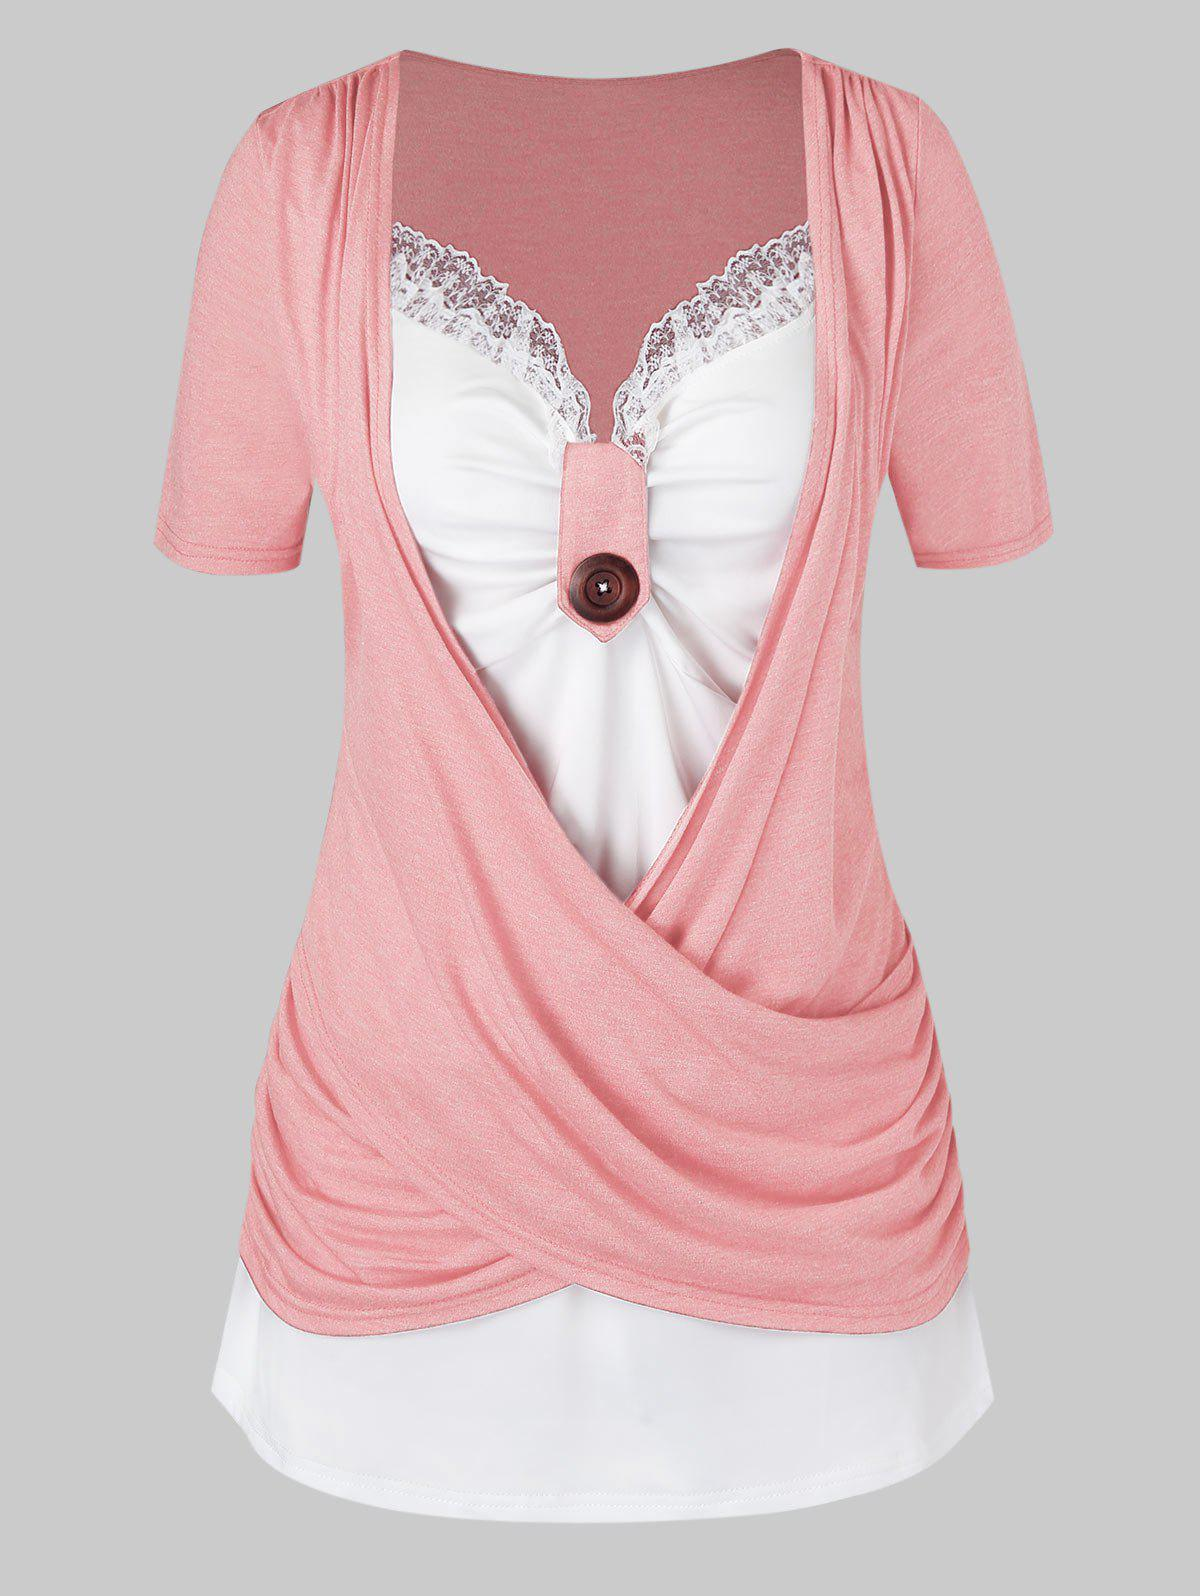 Plus Size Crossover Knotted Colorblock T Shirt - LIGHT PINK 1X